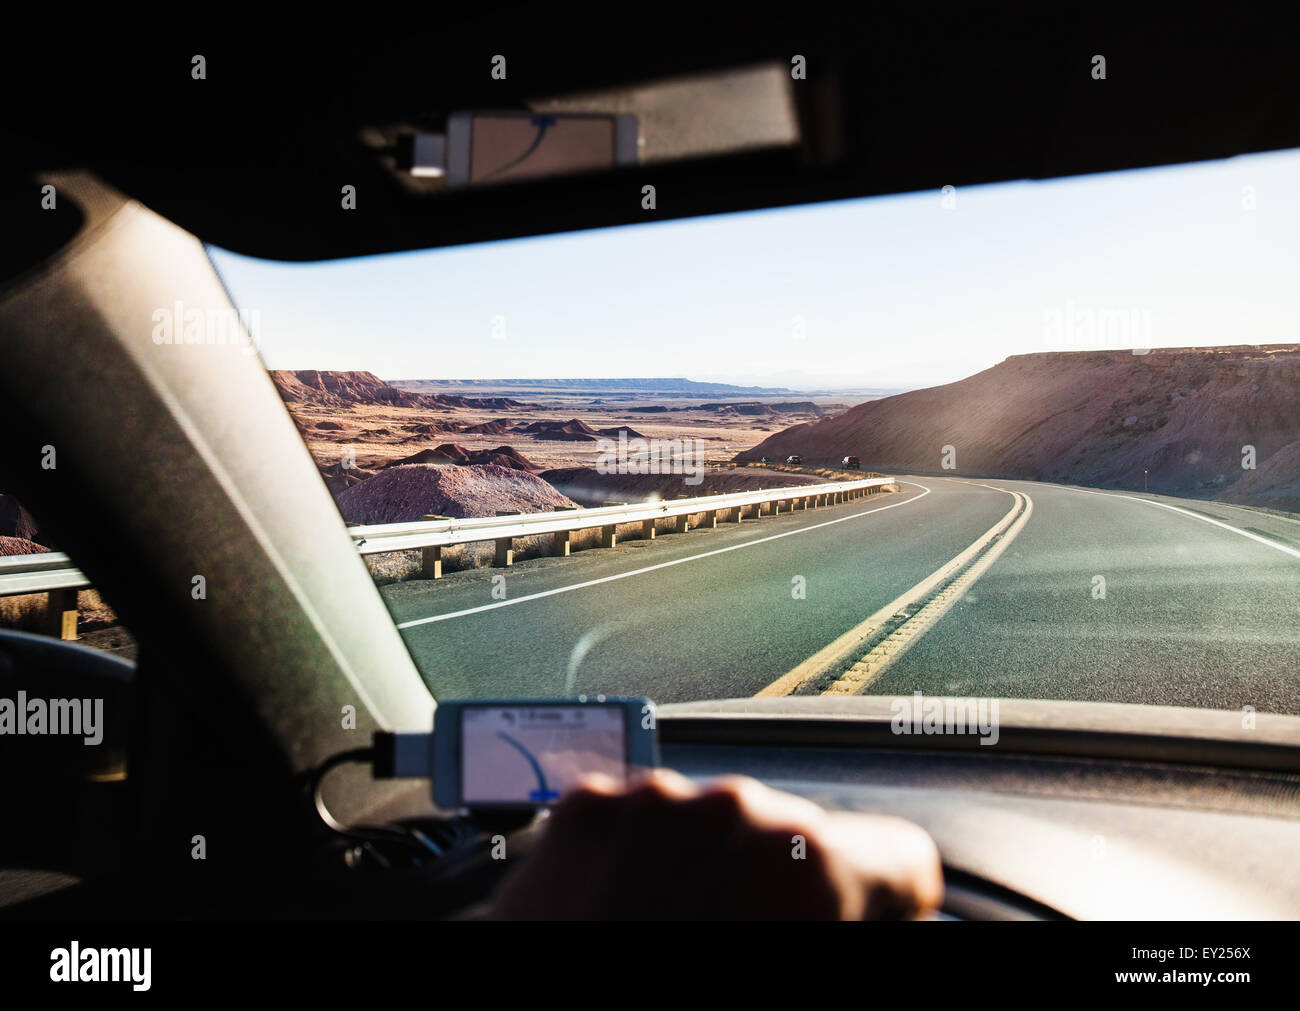 View from inside car driving in Monument Valley, Utah, USA - Stock Image